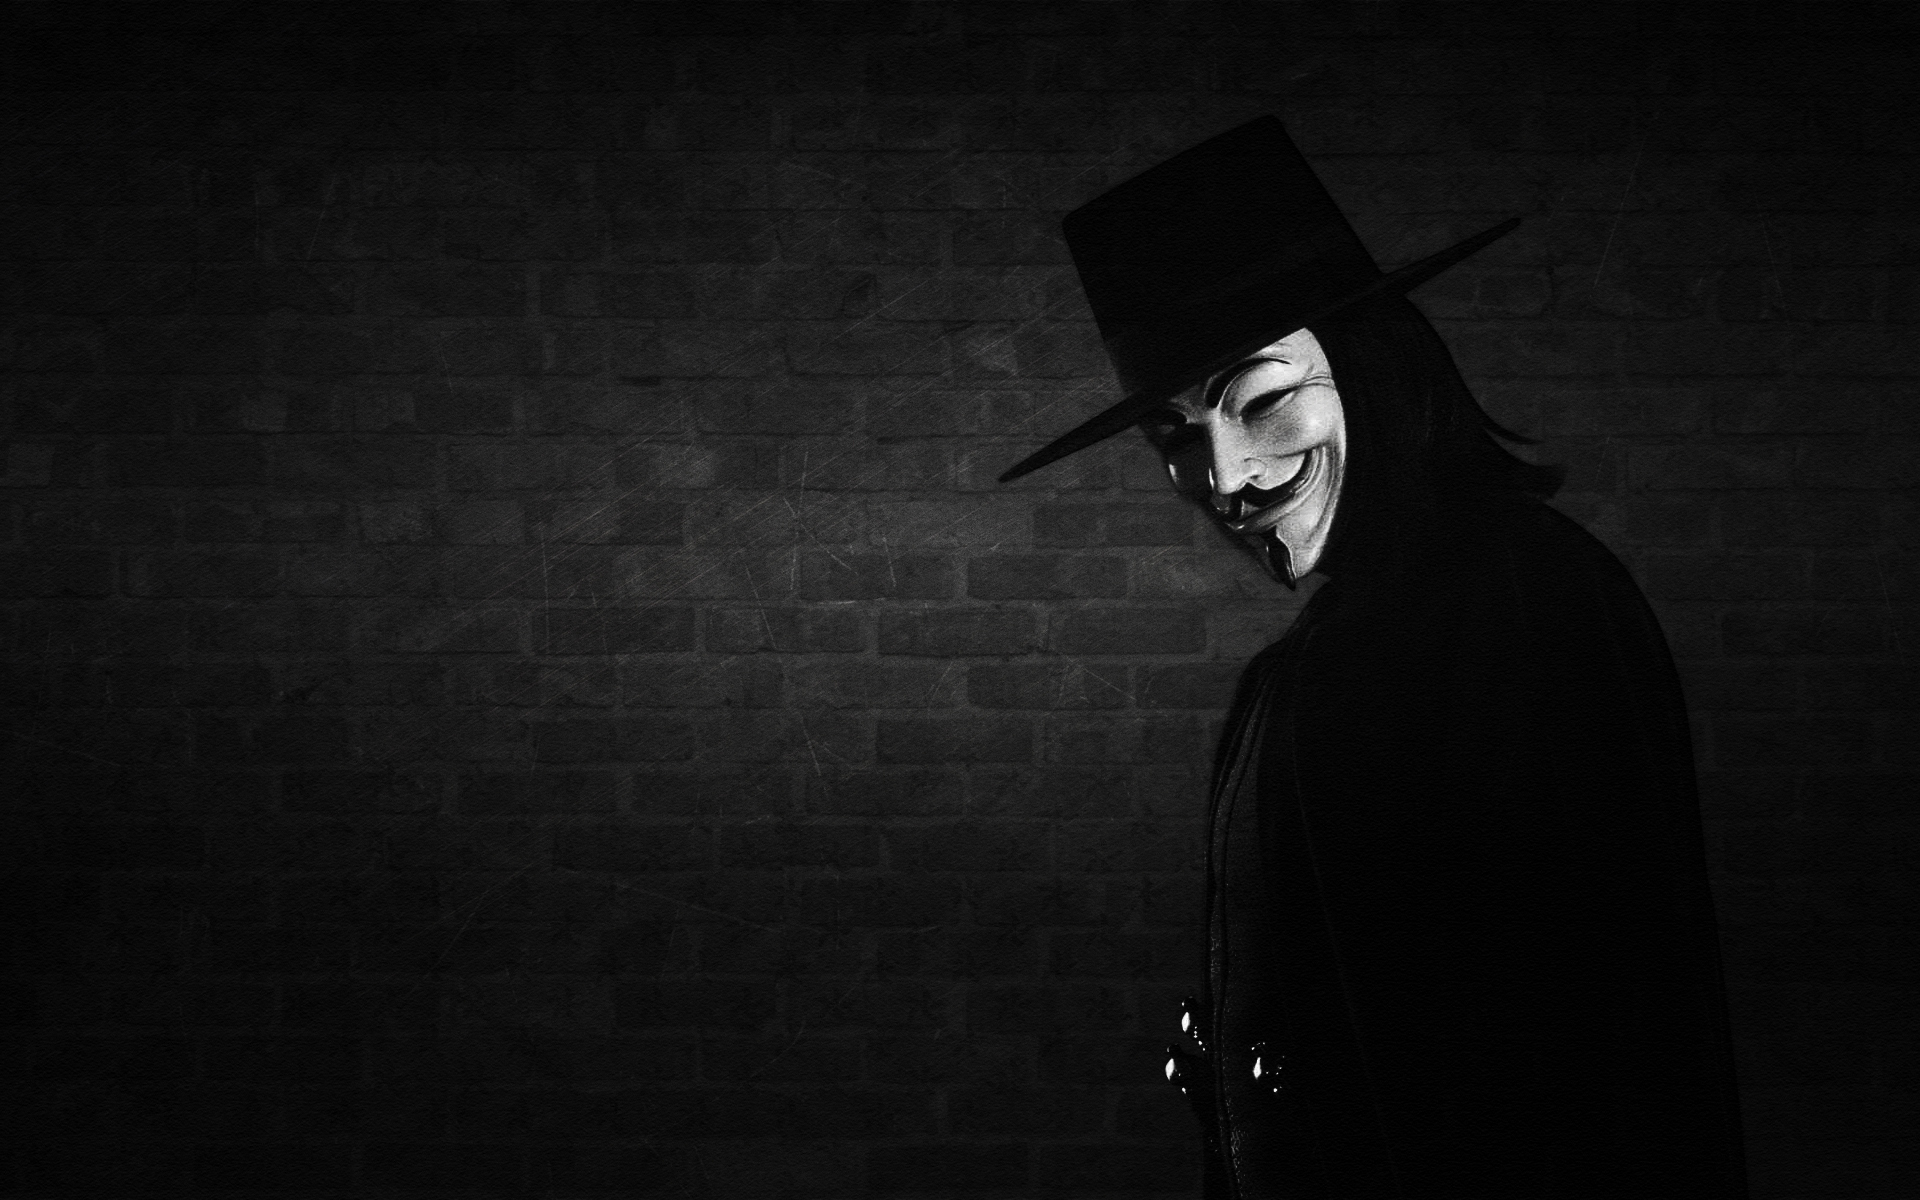 mask V for vendetta wallpapers and images   wallpapers 1920x1200